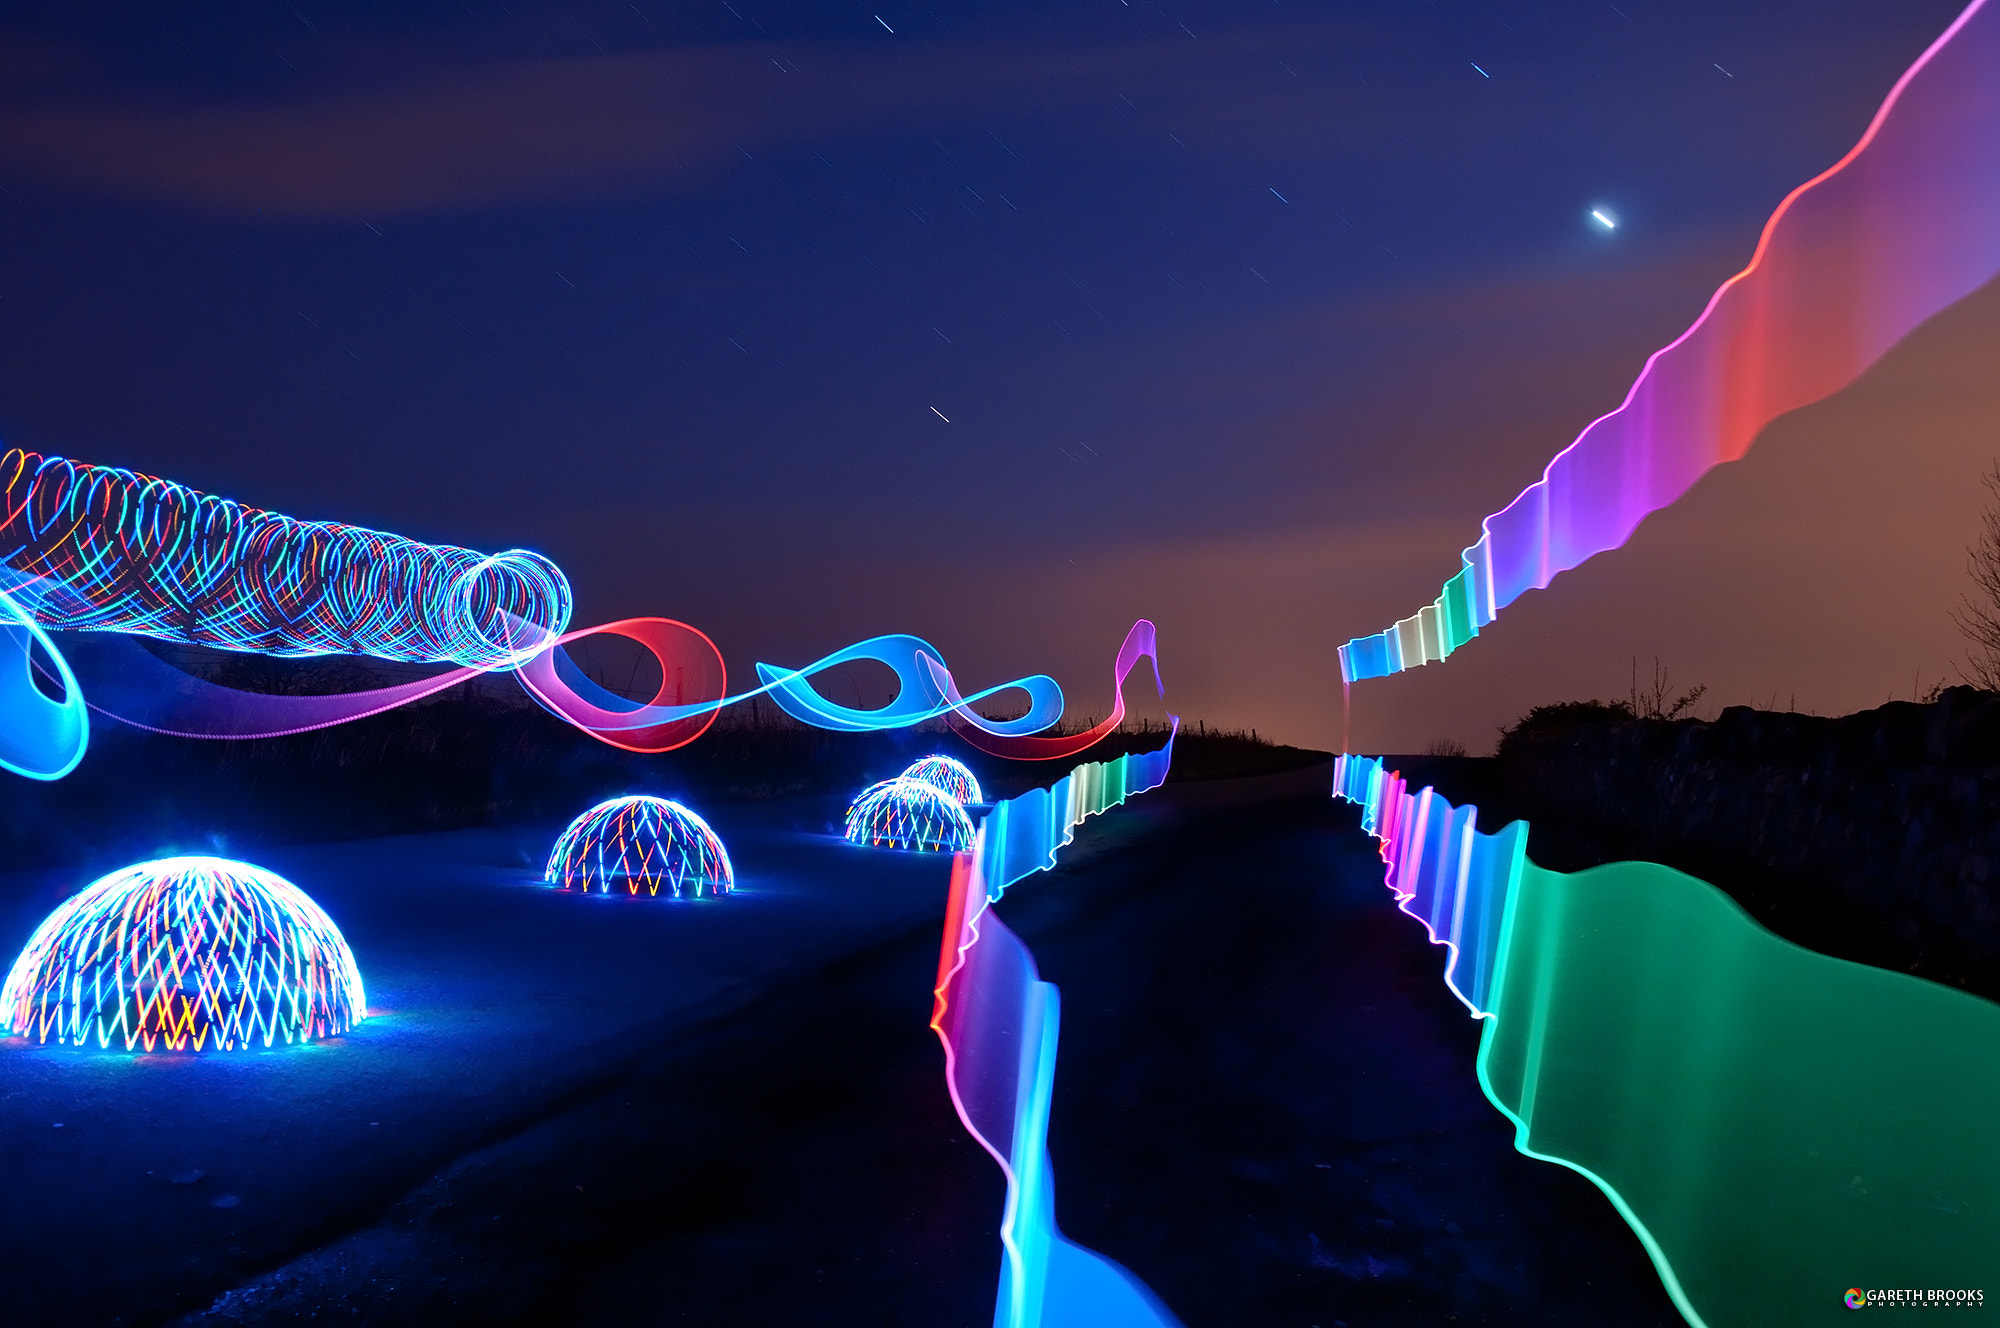 Photograph Ribbons, Domes and Star Trails by Gareth Brooks on 500px